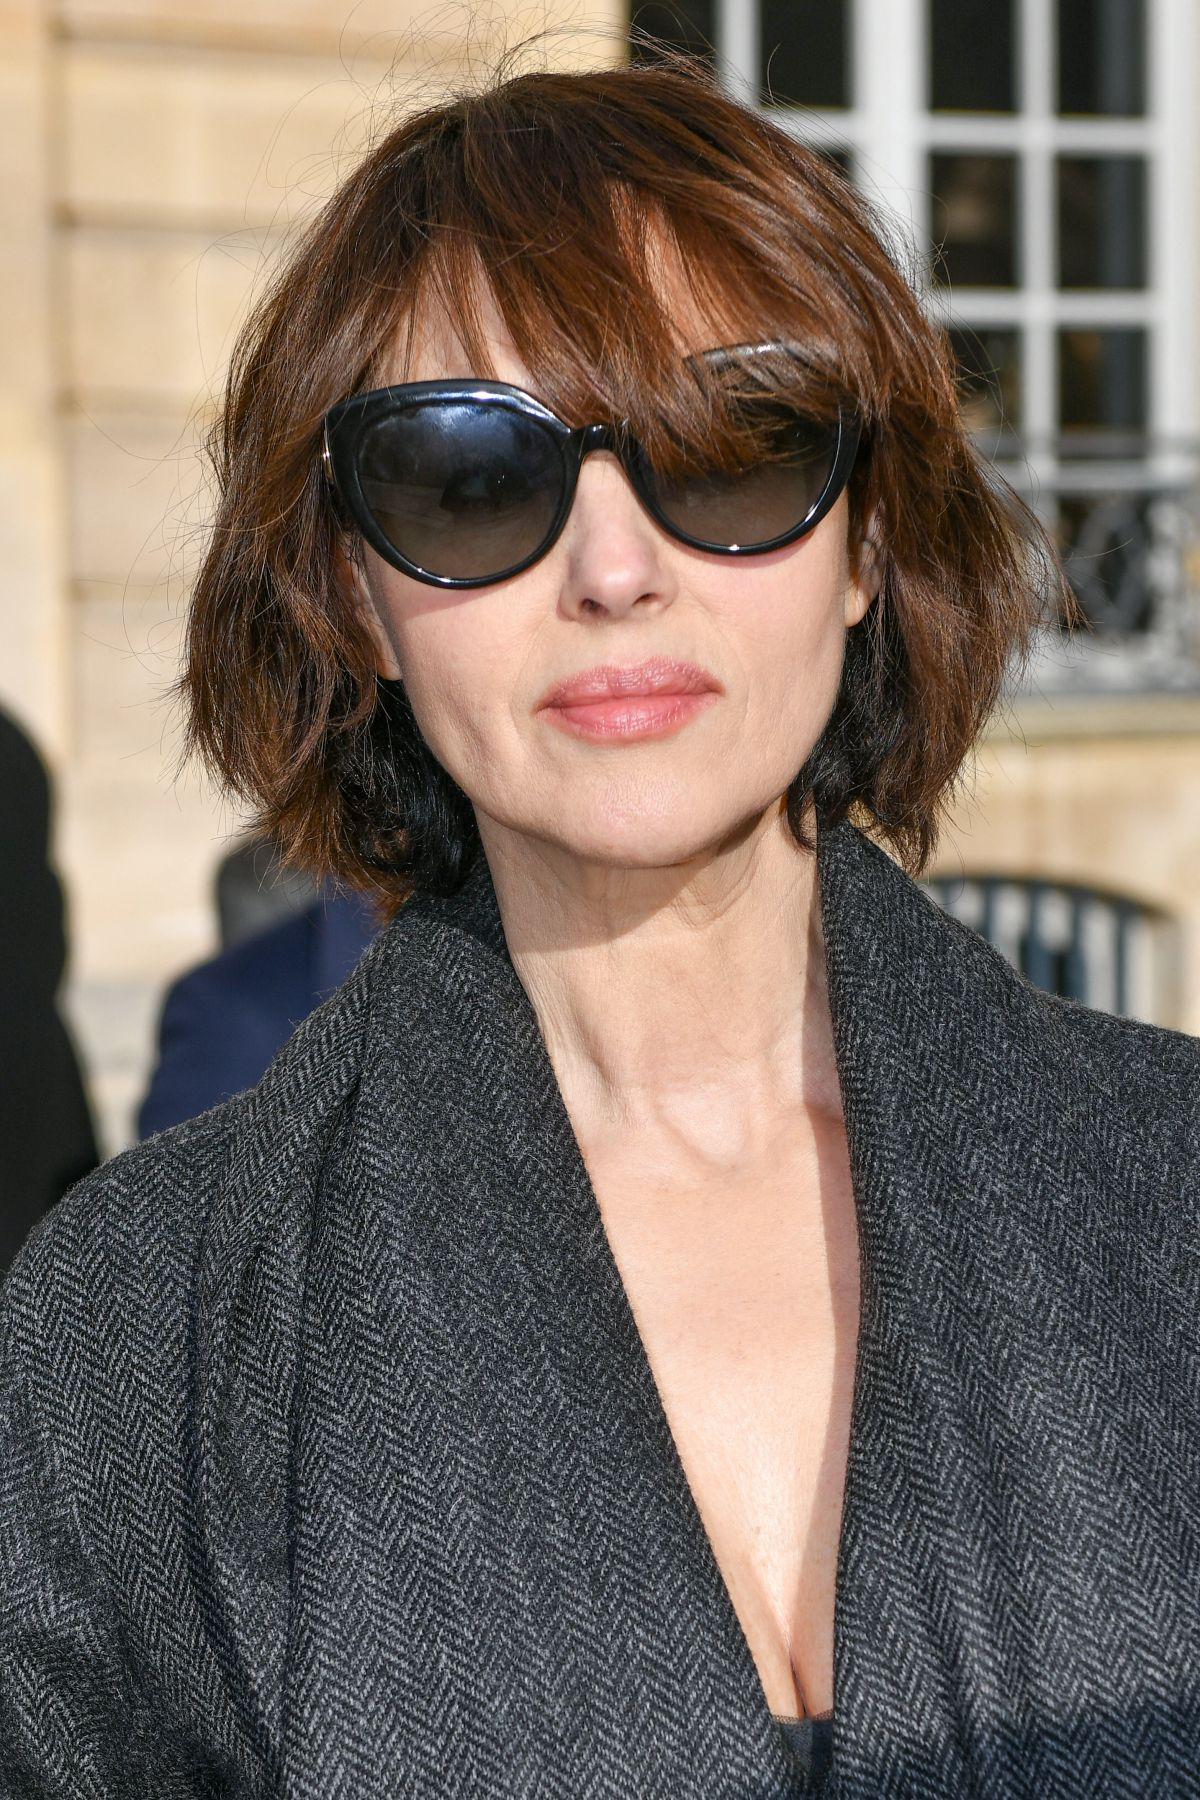 Monica Bellucci Looks Ageless With New Short Hairstyle at